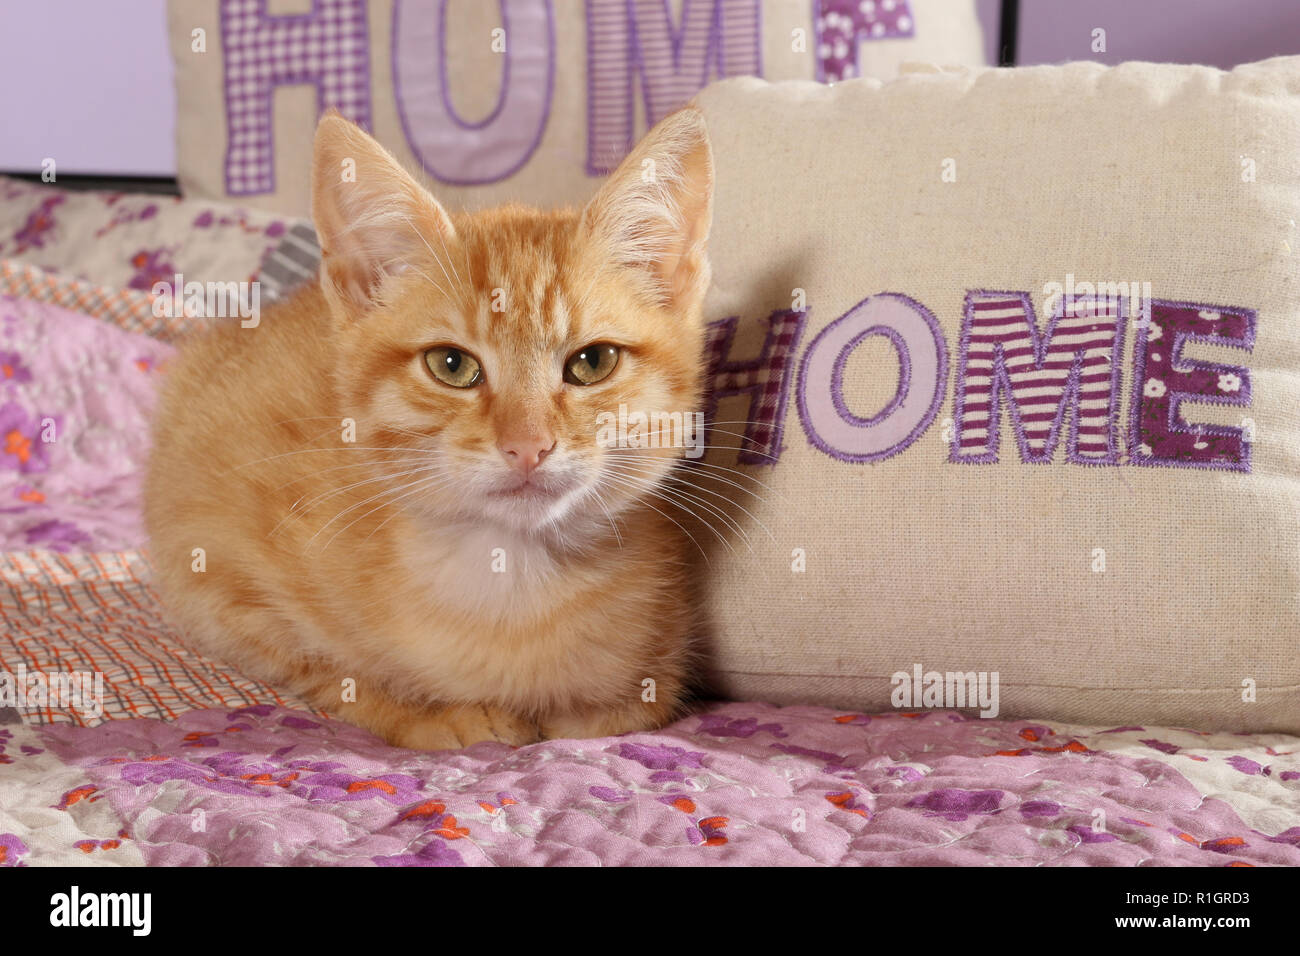 young domestic cat, 3 month old, ginger, sitting on a bed - Stock Image